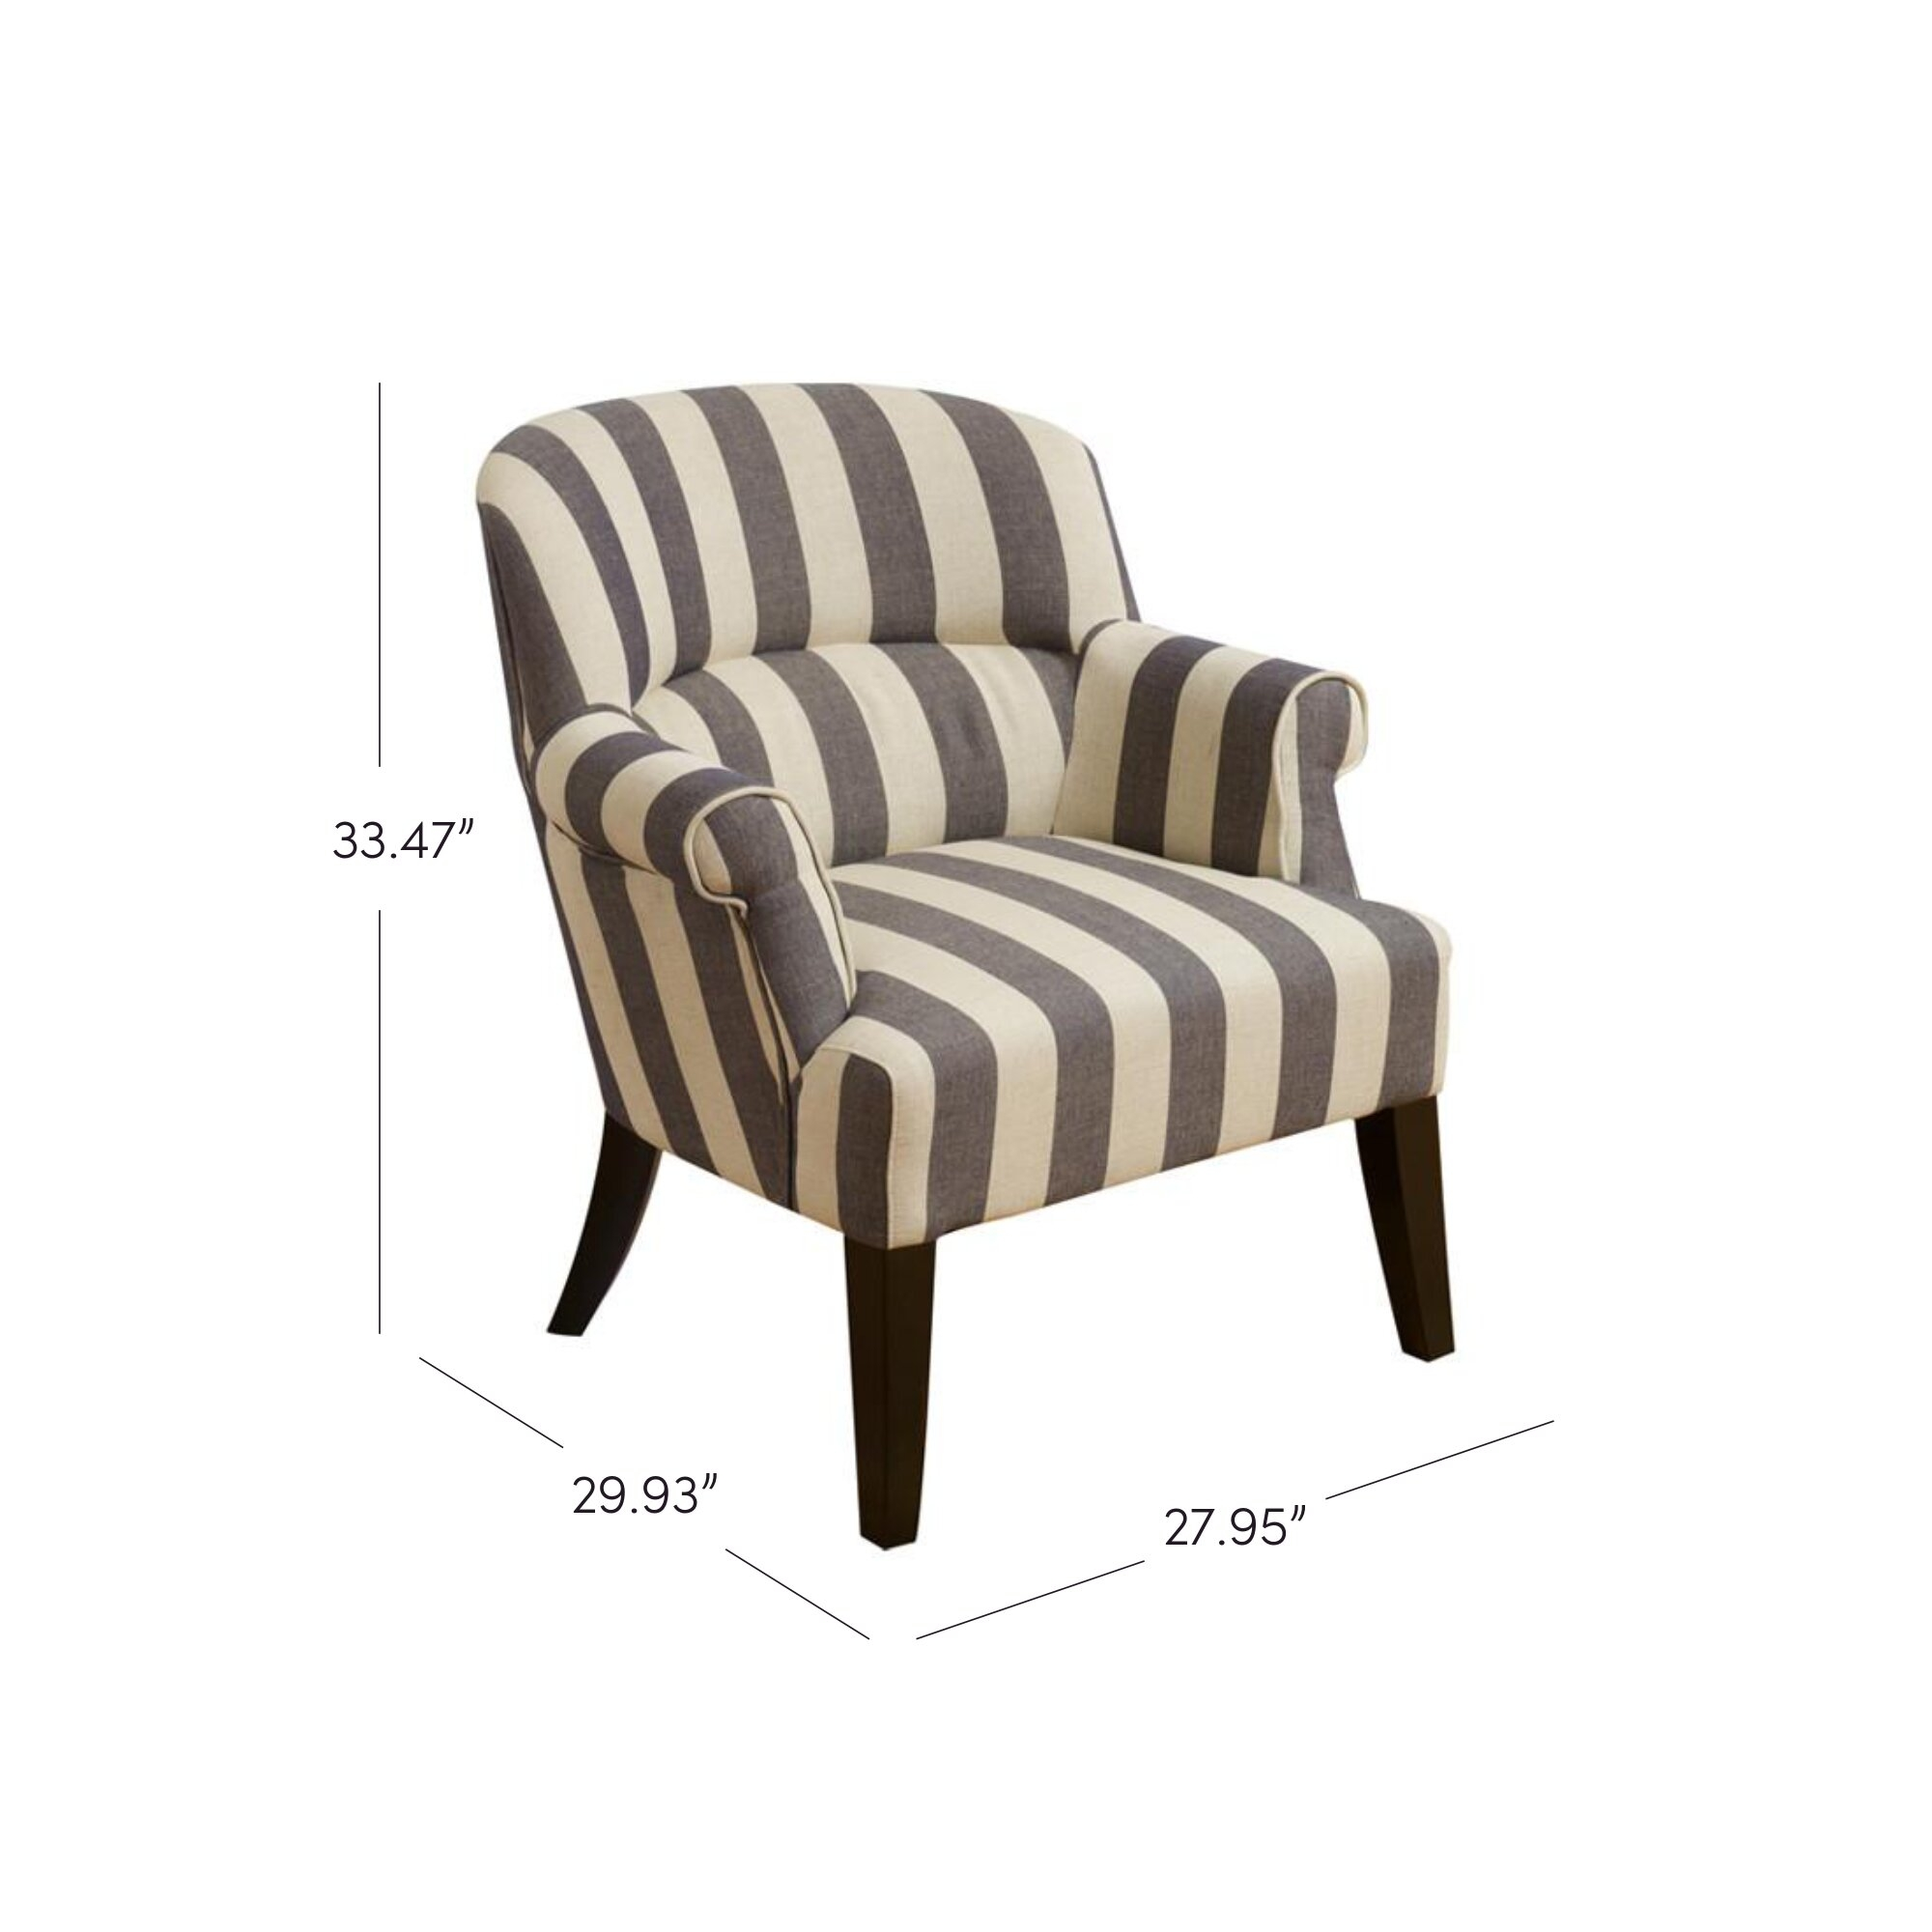 Merveilleux Striped Club Chair 4